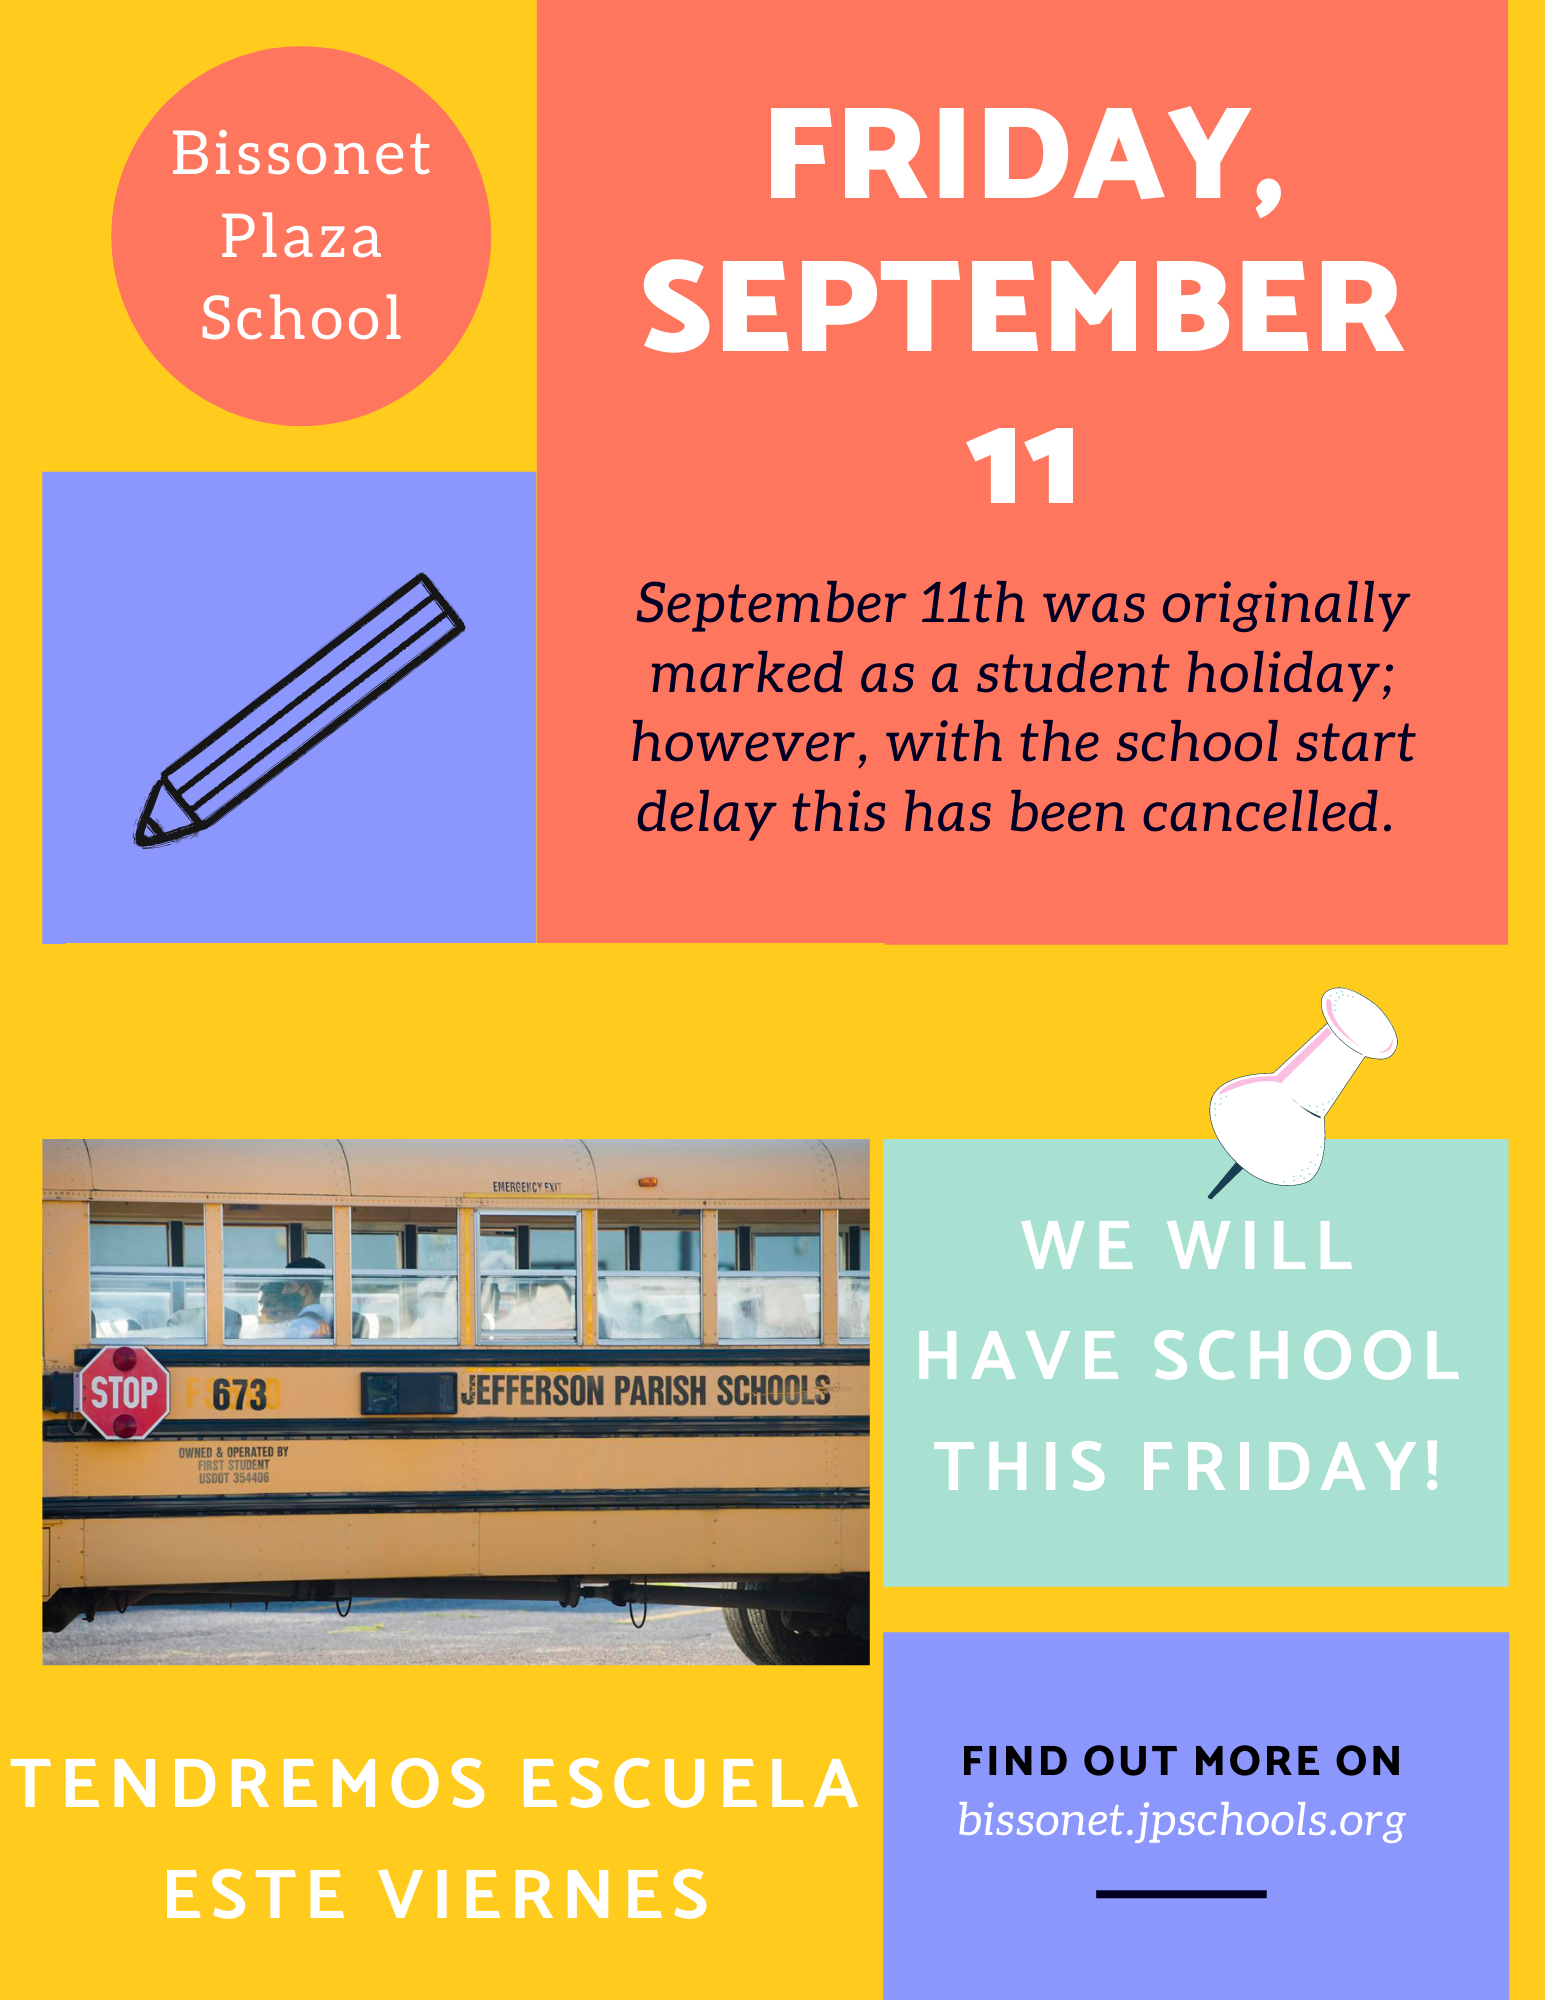 School Calendar Change: School September 11